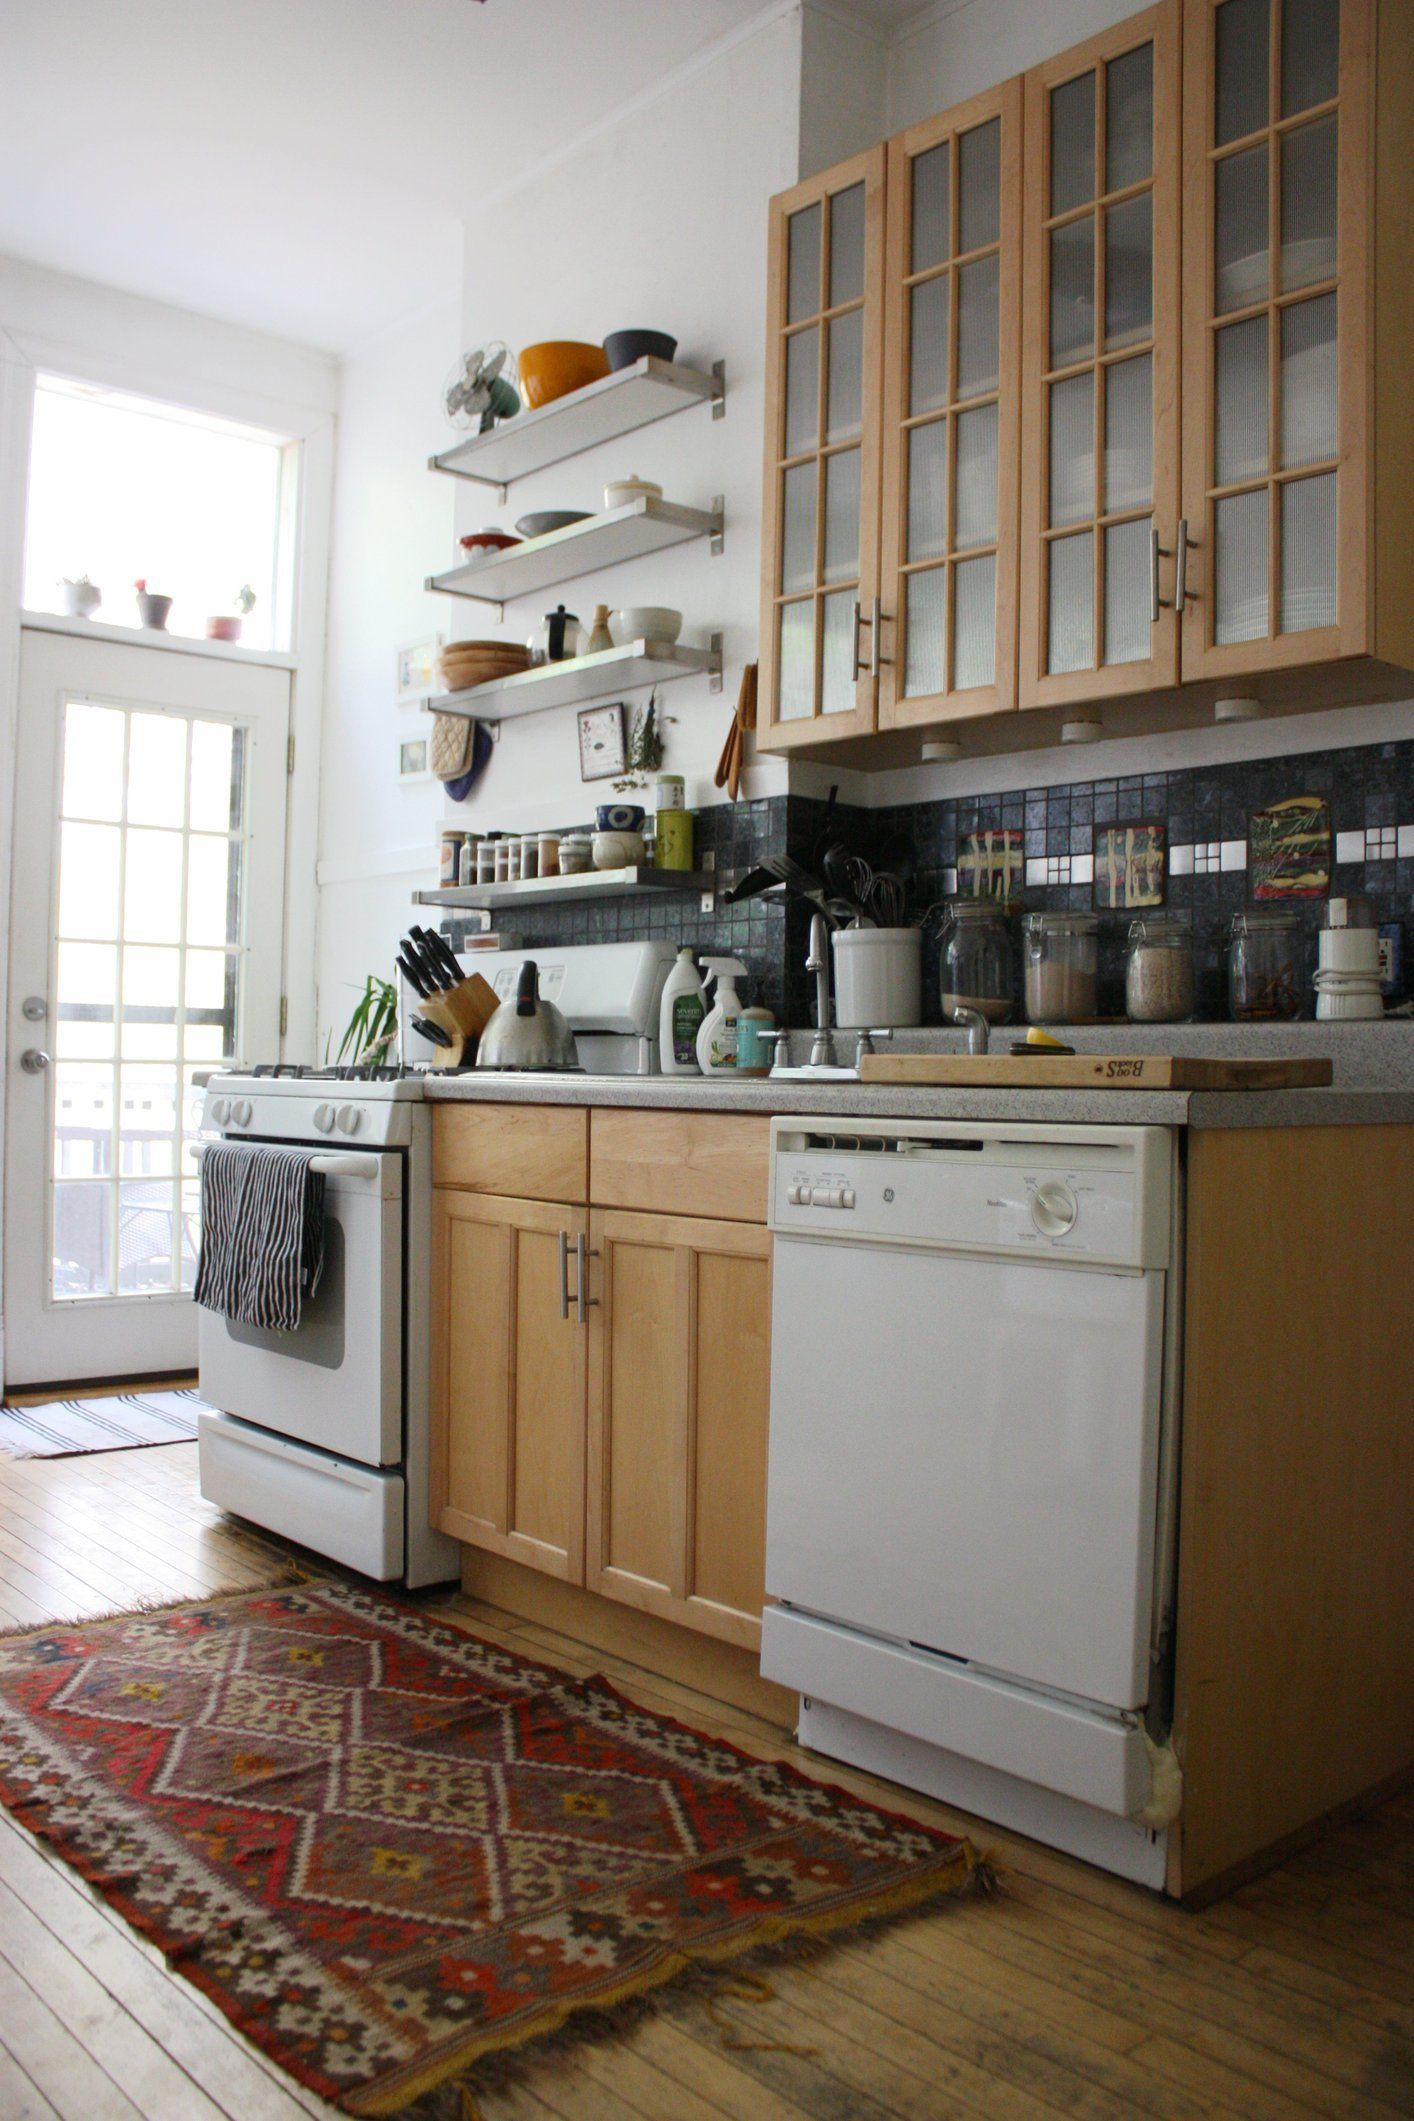 How many smart storage and organization solutions can you fit on one kitchen wall? Quite a few, it turns out! Despite not occupying a lot of square footage, the owners of this Chicago kitchen have made the most of every available bit of horizontal and vertical space. Here are seven details worth noting.